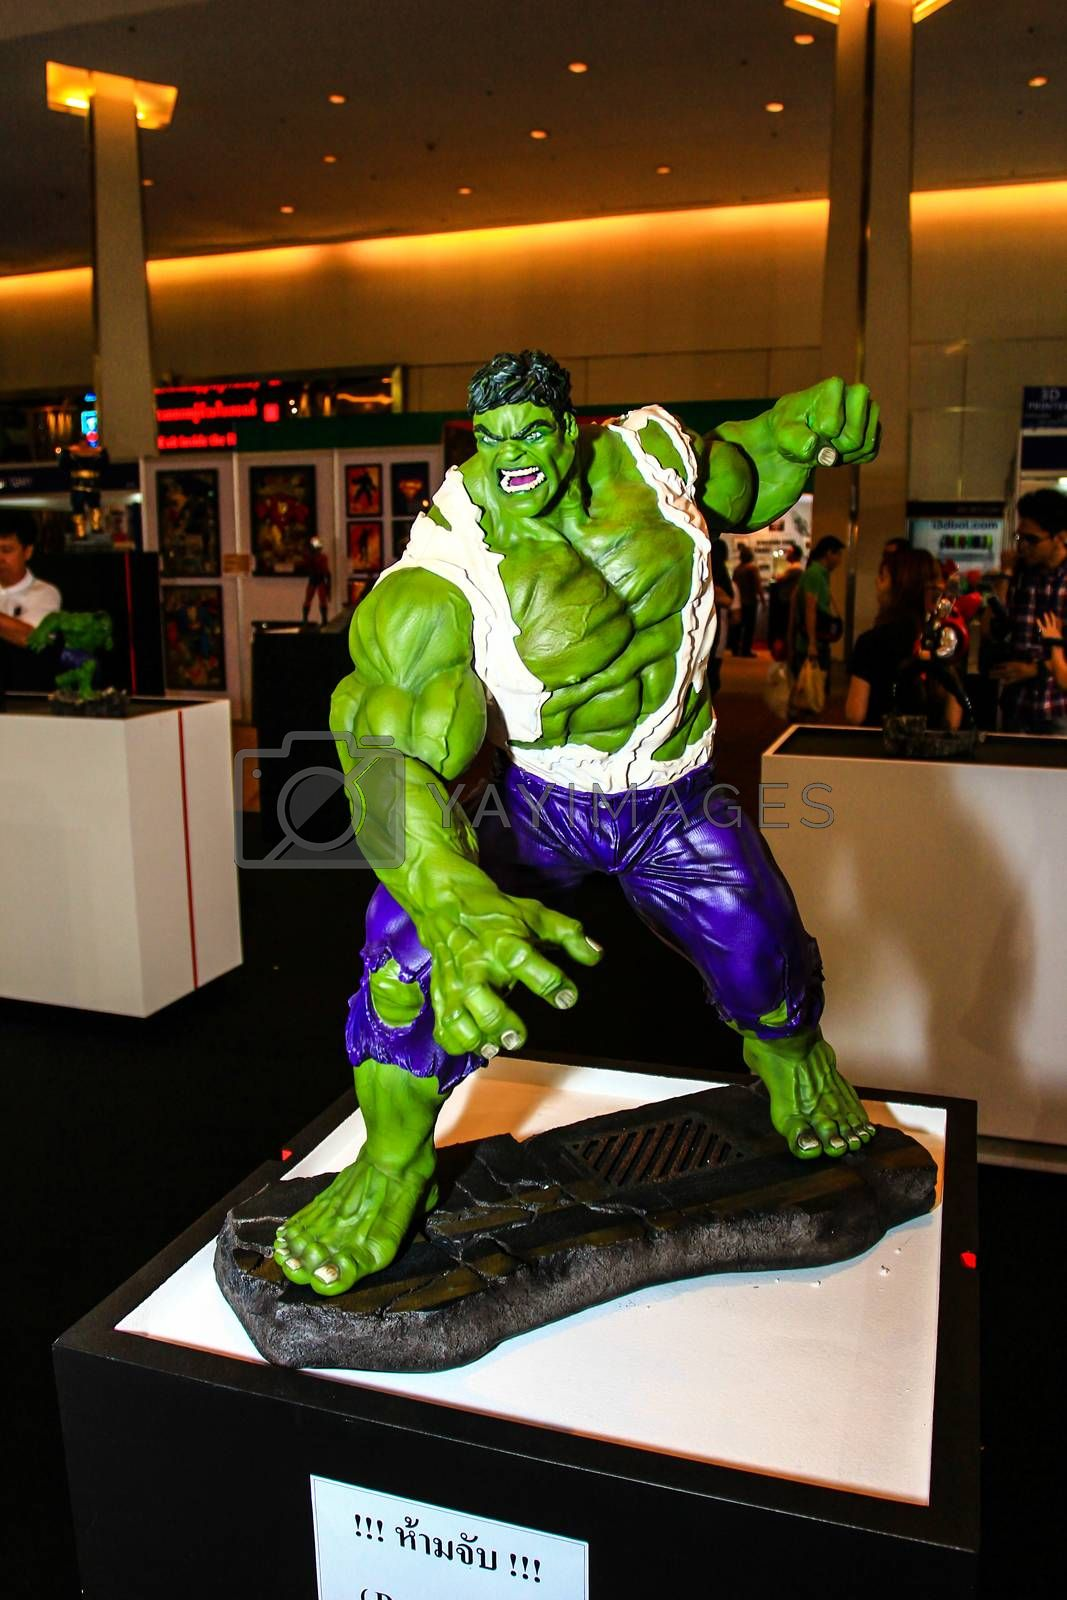 Royalty free image of A model of the character Hulk from the movies and comics by redthirteen